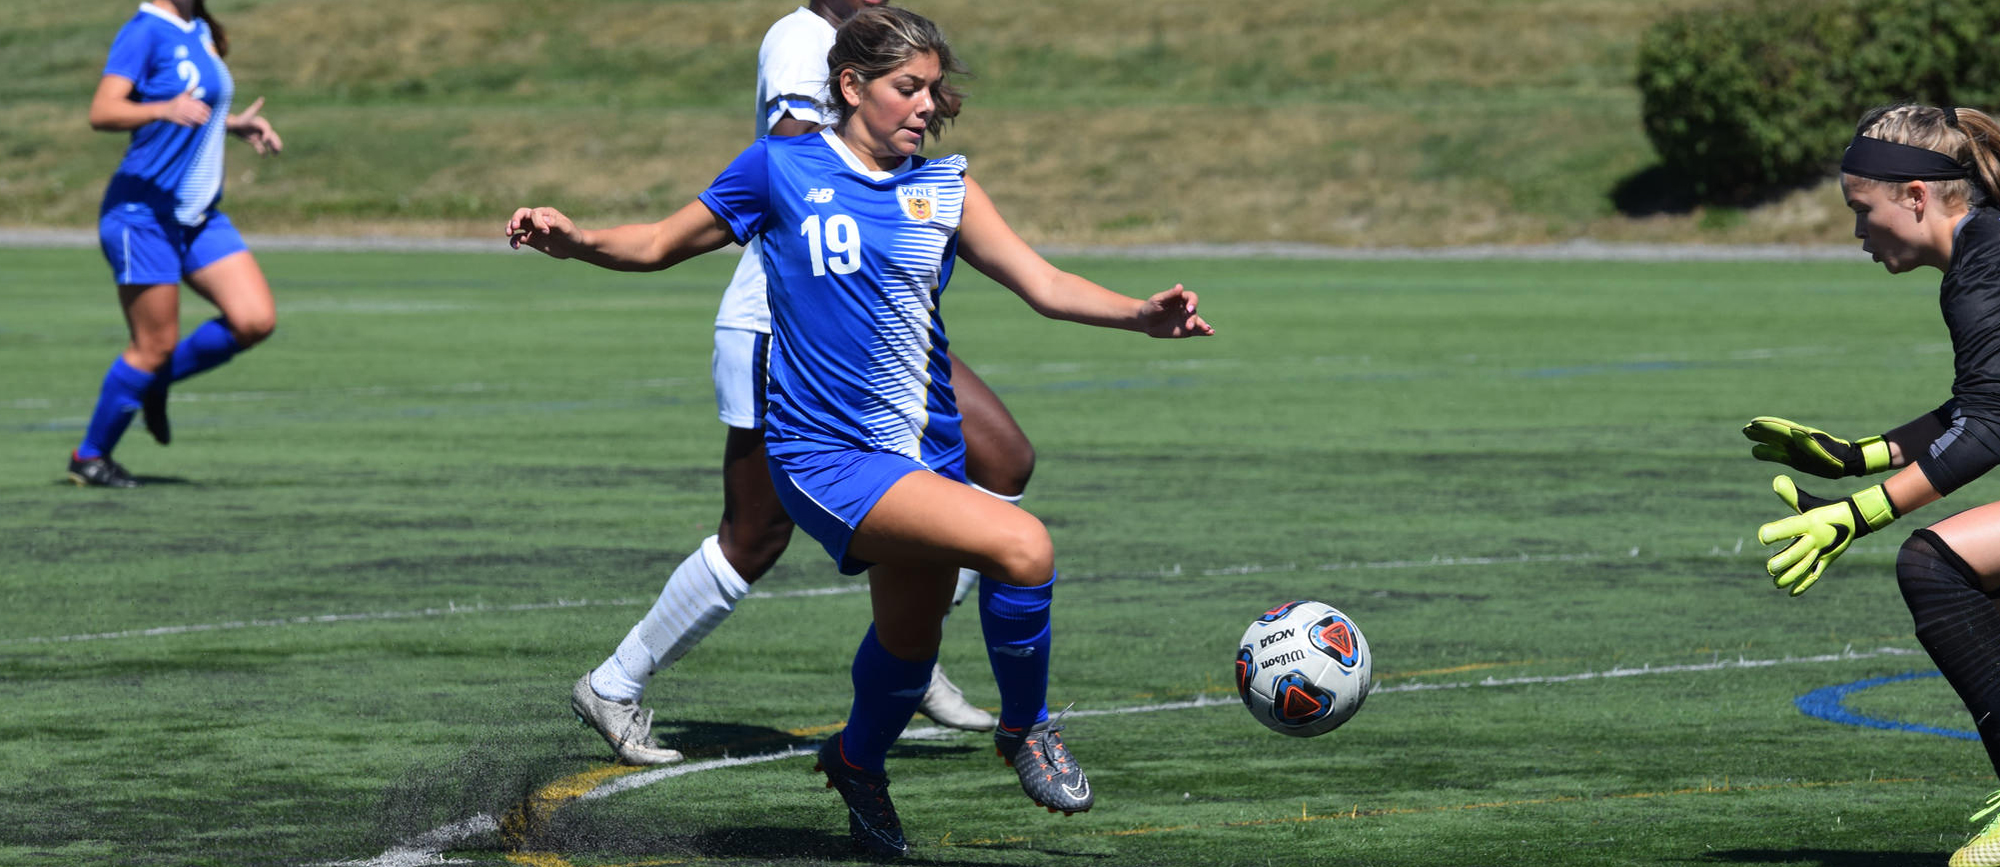 Freshman forward Vanessa Chiarella scored her first collegiate goal in Western New England's 5-3 loss at Salve Regina on Saturday. (Photo by Rachael Margossian)